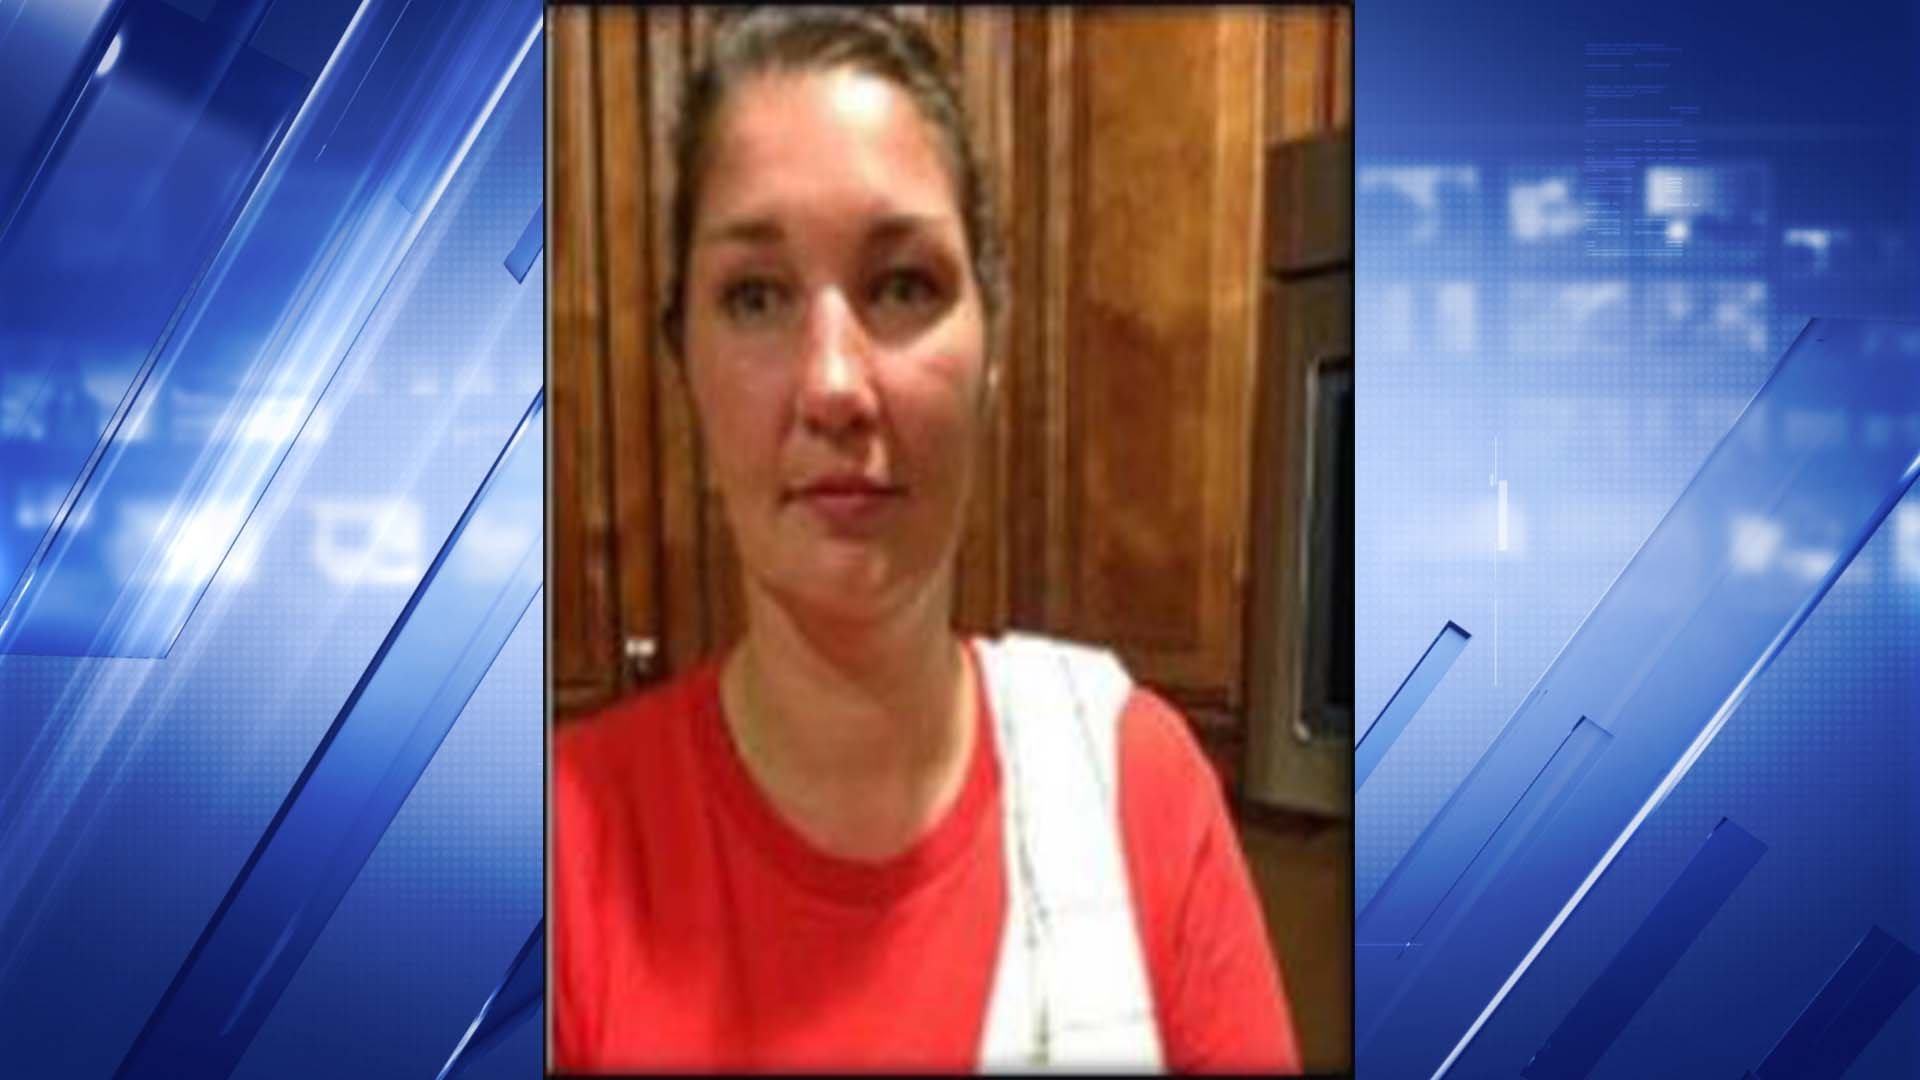 Authorities said 40-year-old Katherine Welge was last seen May 15 in Defiance around 4:00 p.m.